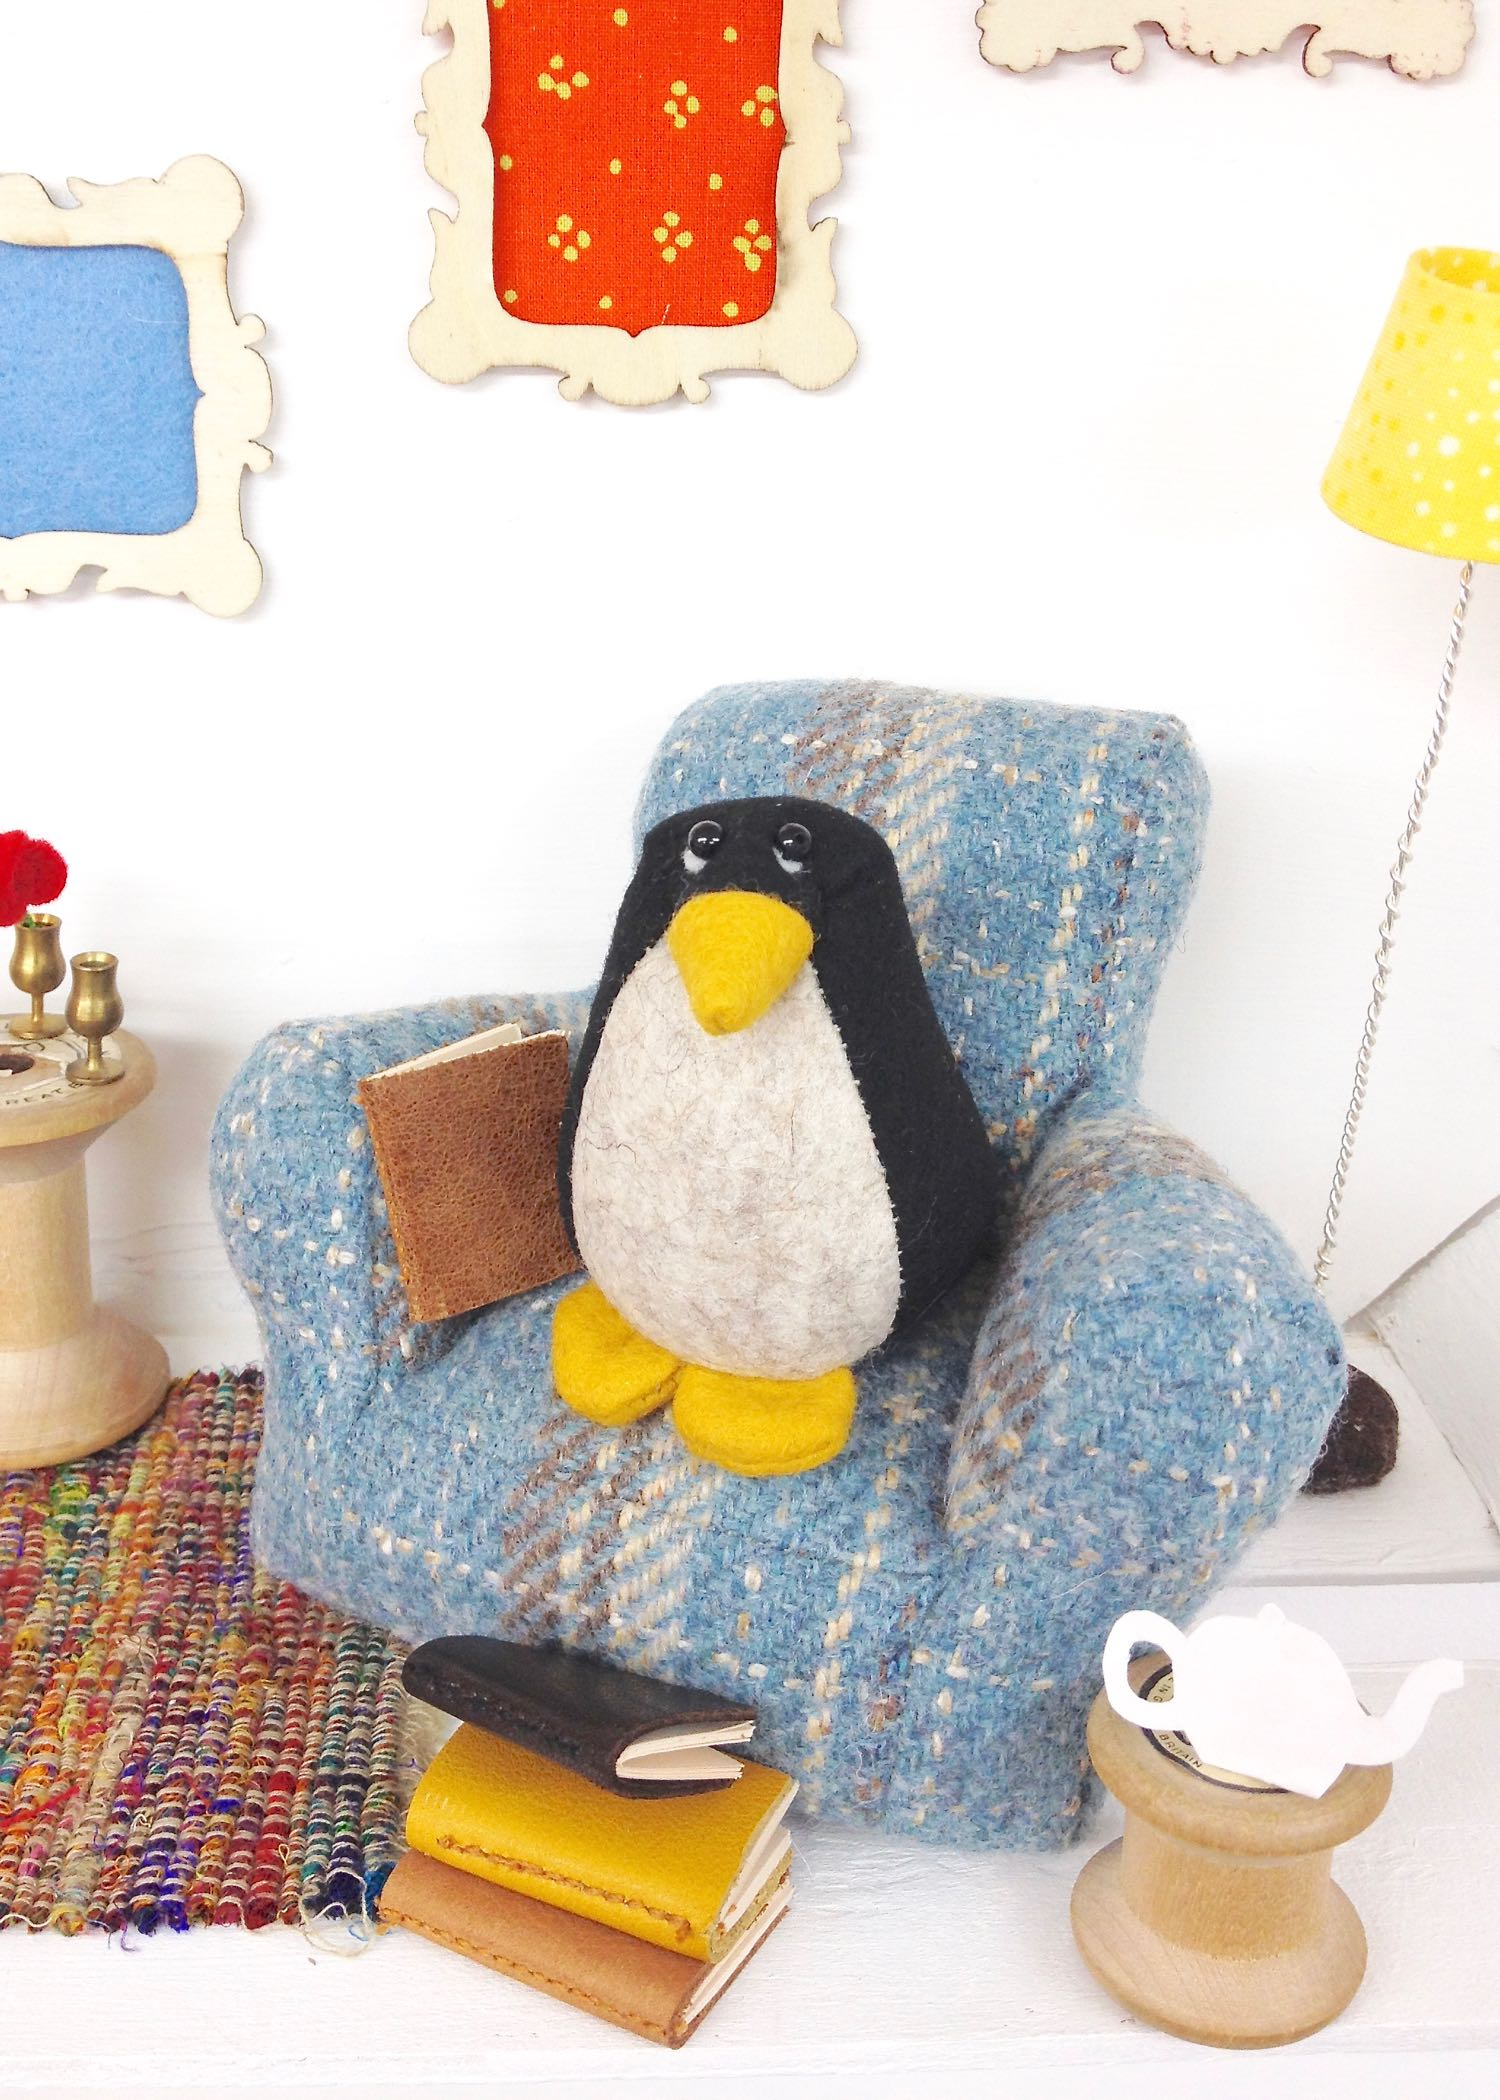 Bilberry Woods character Pedro the Penguin sitting on his tweed chair reading books | Handmade by Laura Mirjami | Mirjami Design..jpg